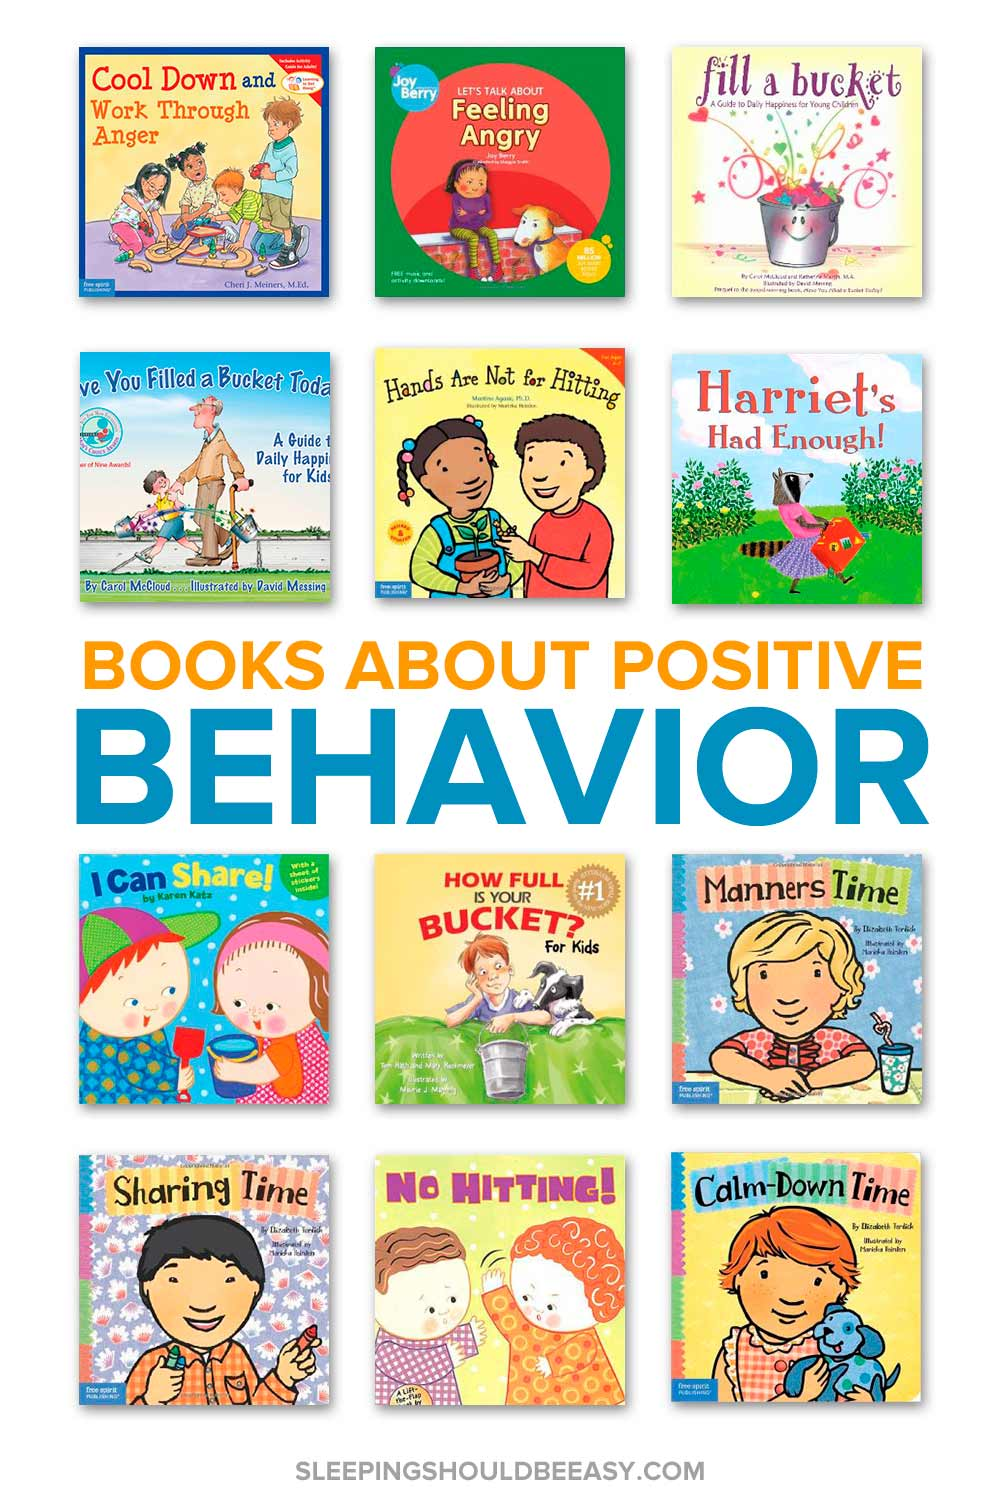 A collection of children's books that reinforce positive behavior